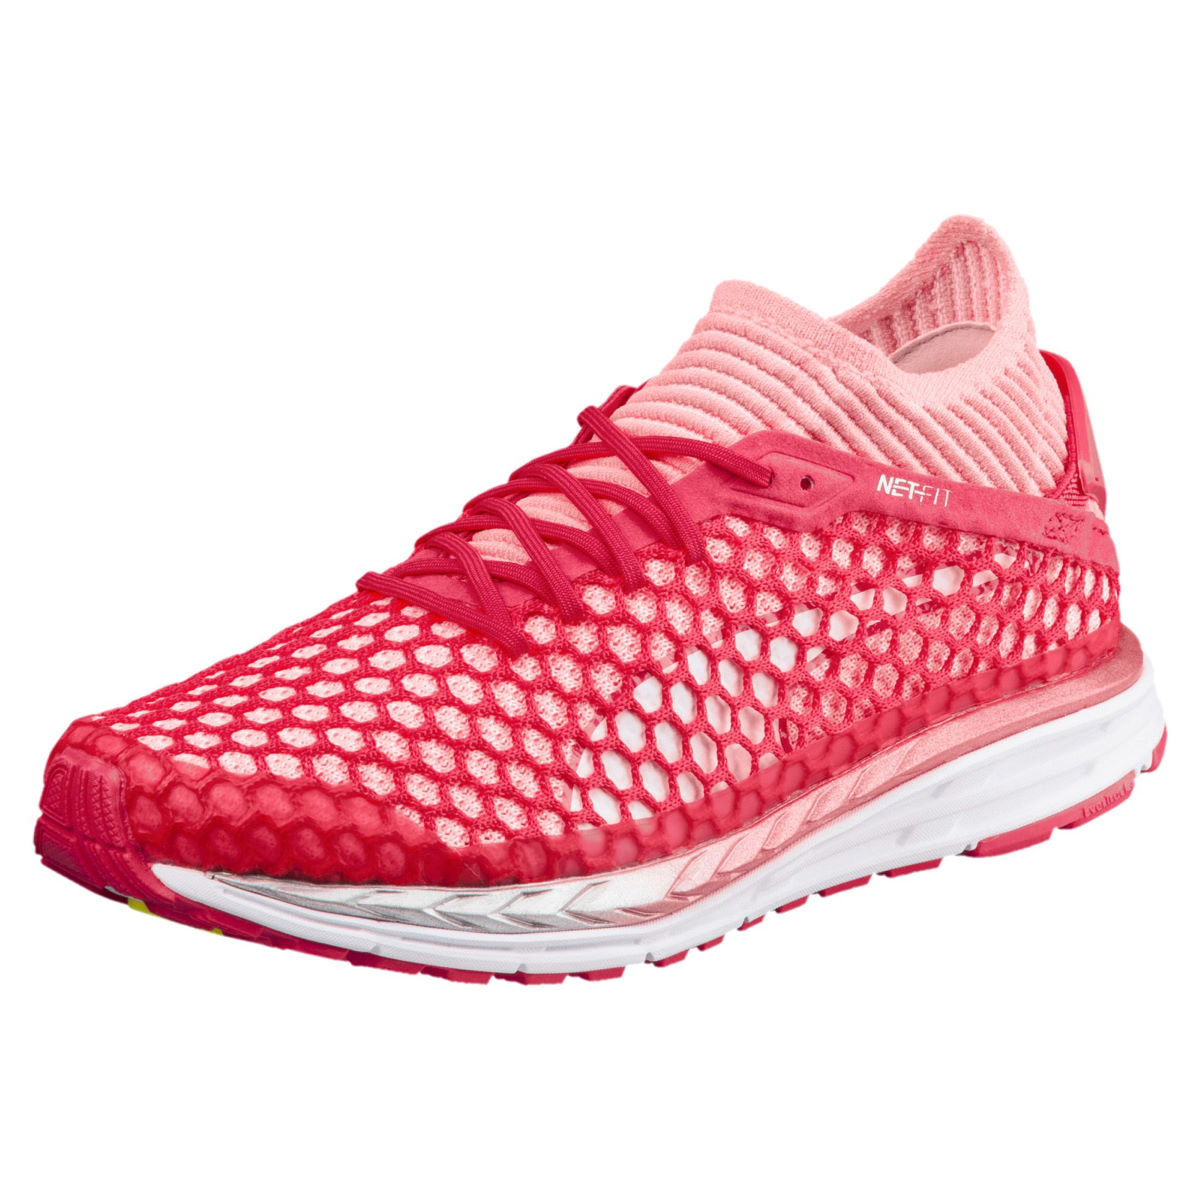 Chaussures Femme Puma Speed Ignite Netfit 2 - UK 8 pink-peach-white